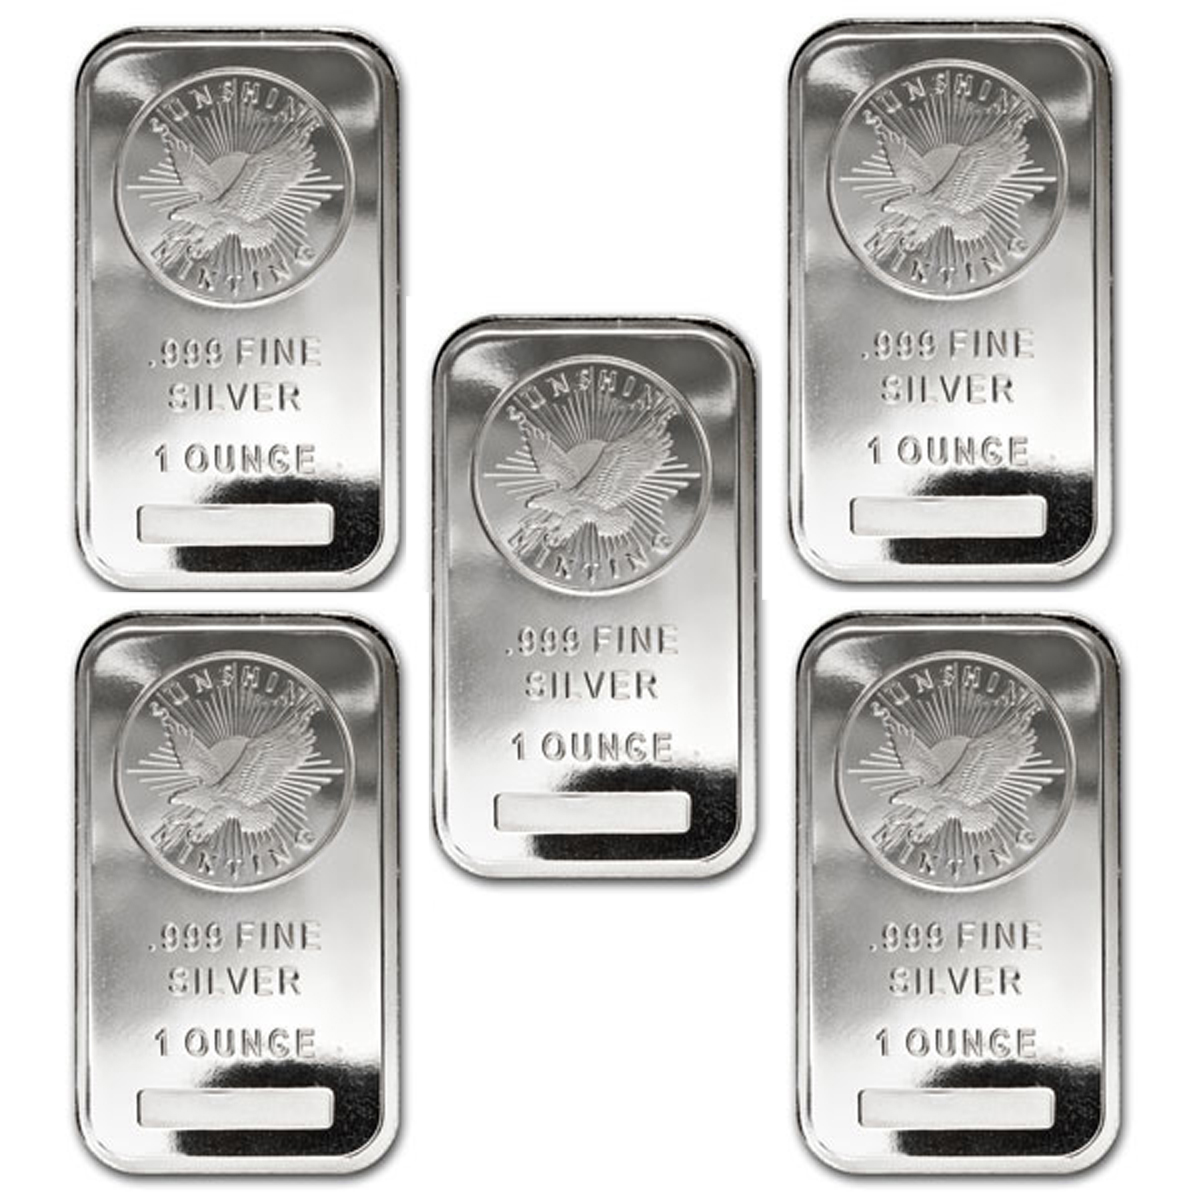 Where to buy silver - Lot Of 5 1 Oz Sunshine Minting Silver Bar 999 Fine Silver